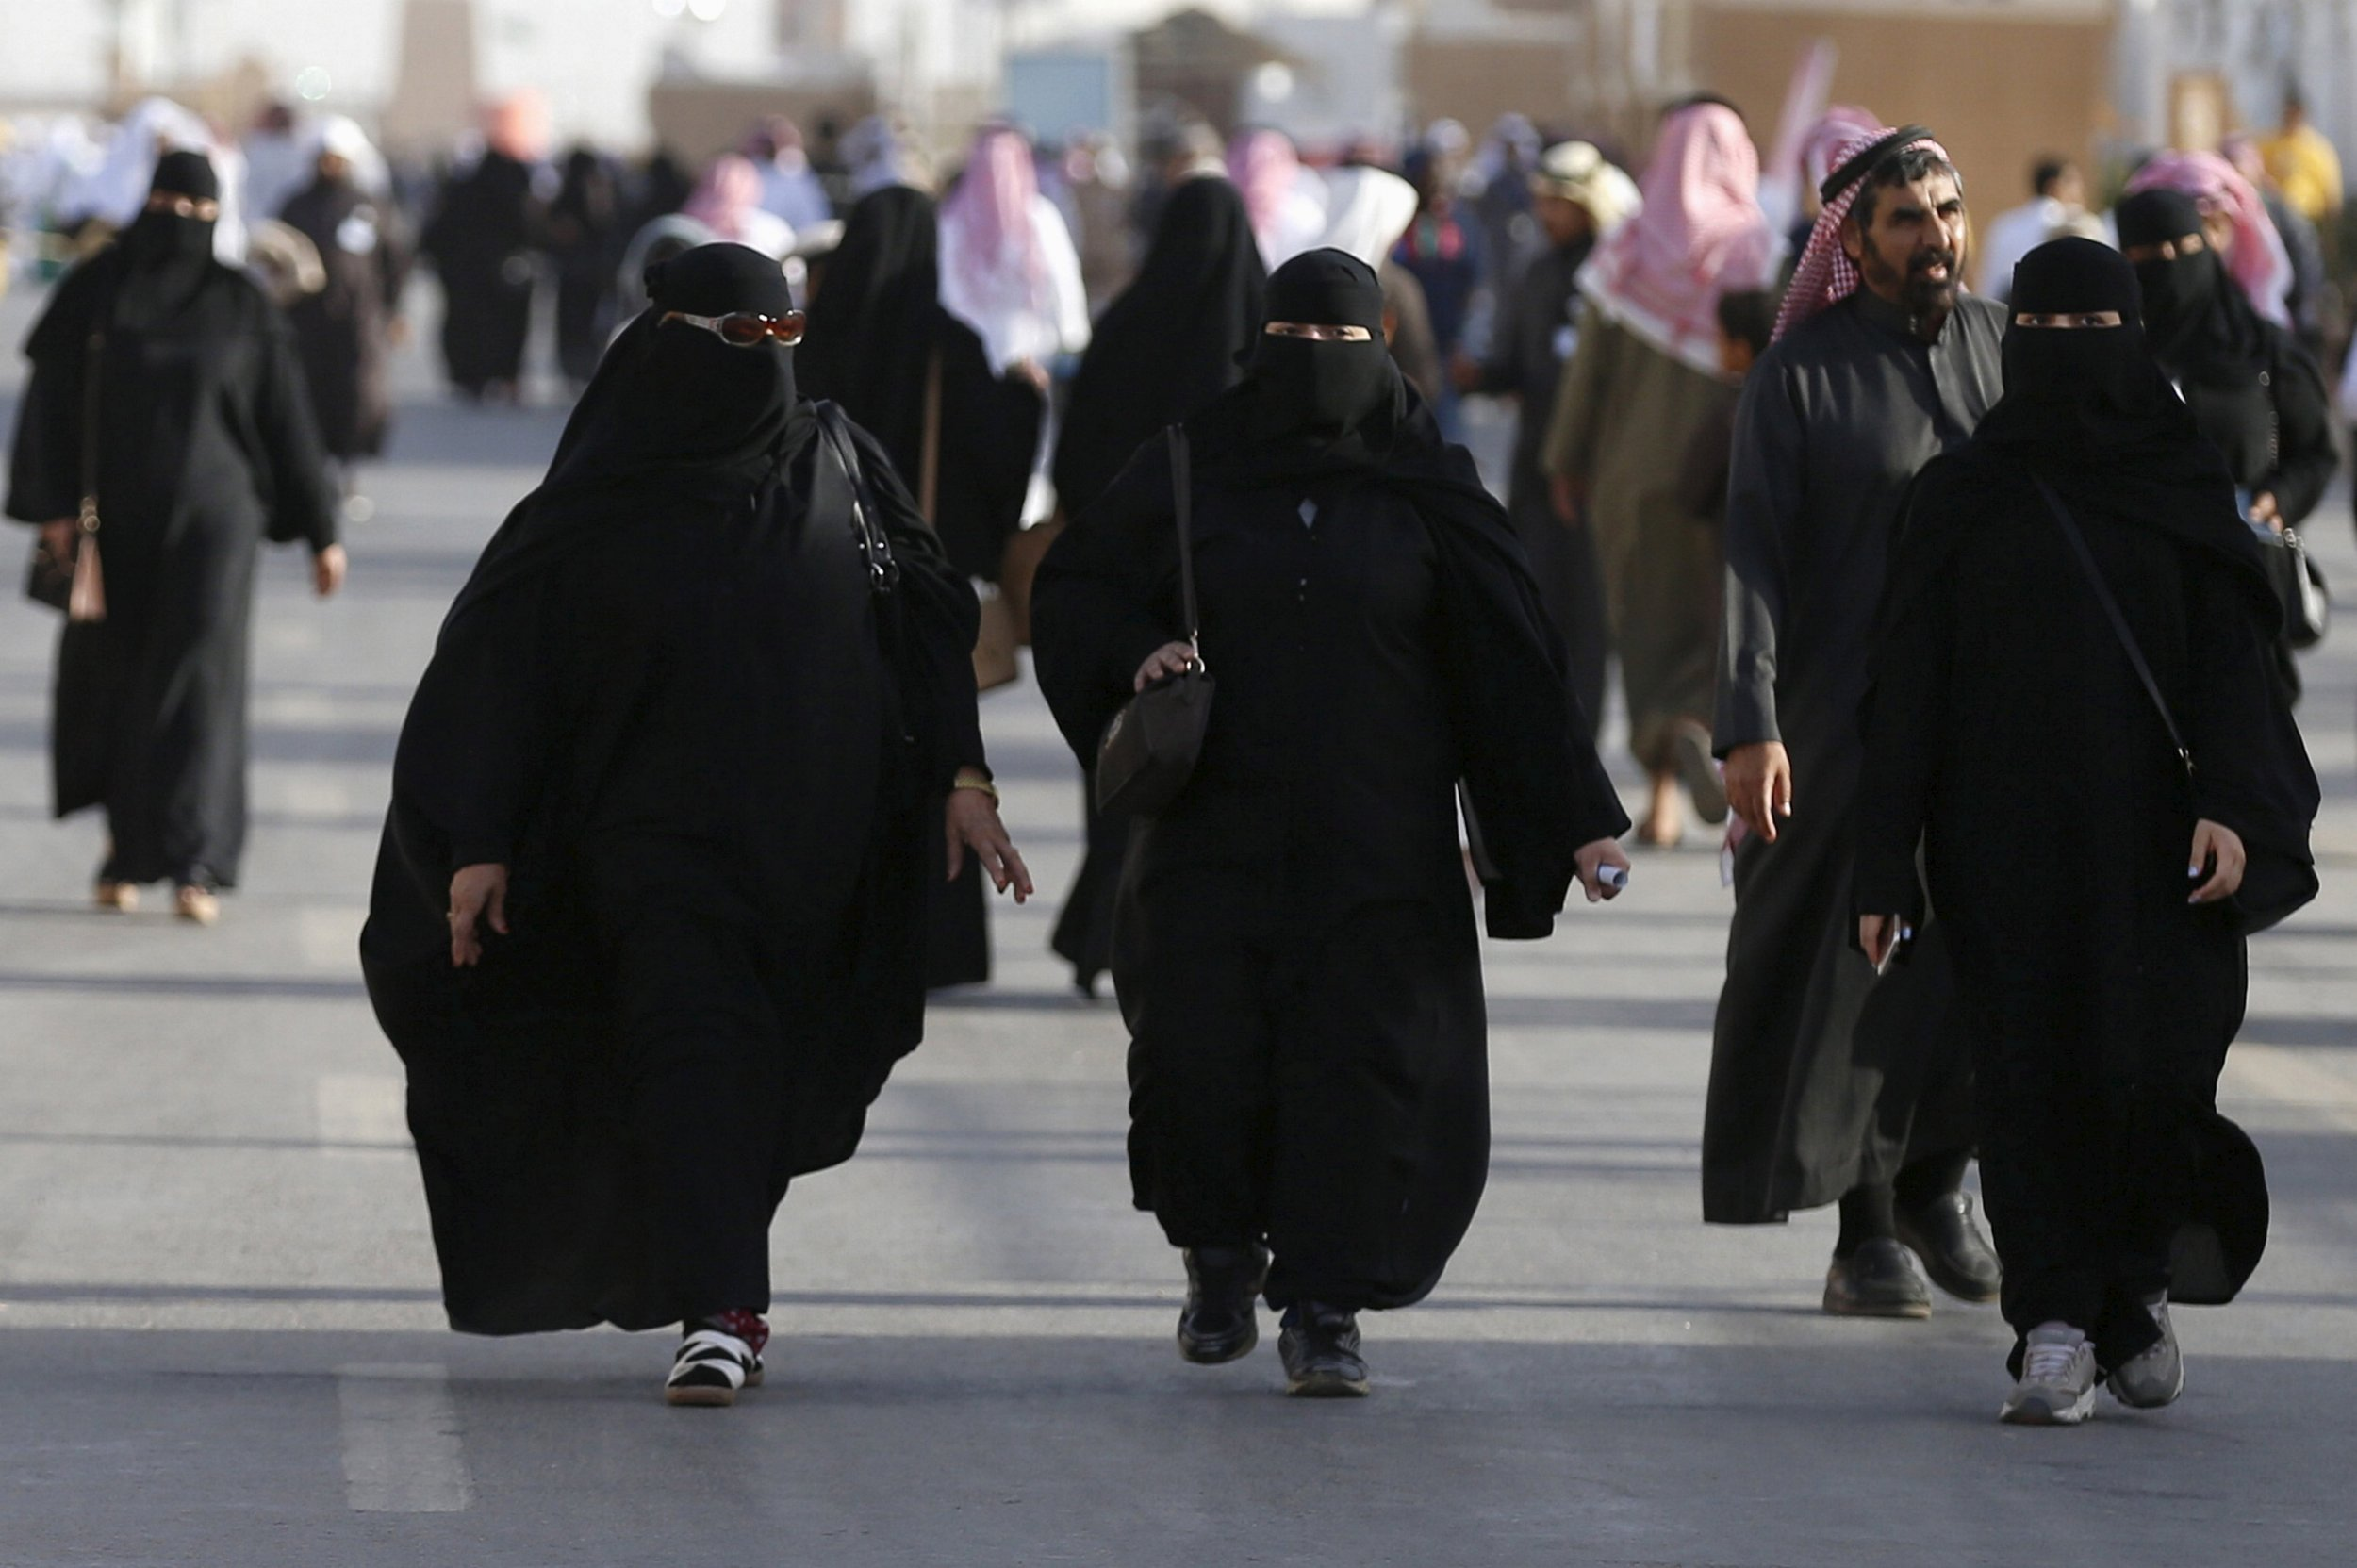 Saudi women attend a cultural festival near Riyadh.